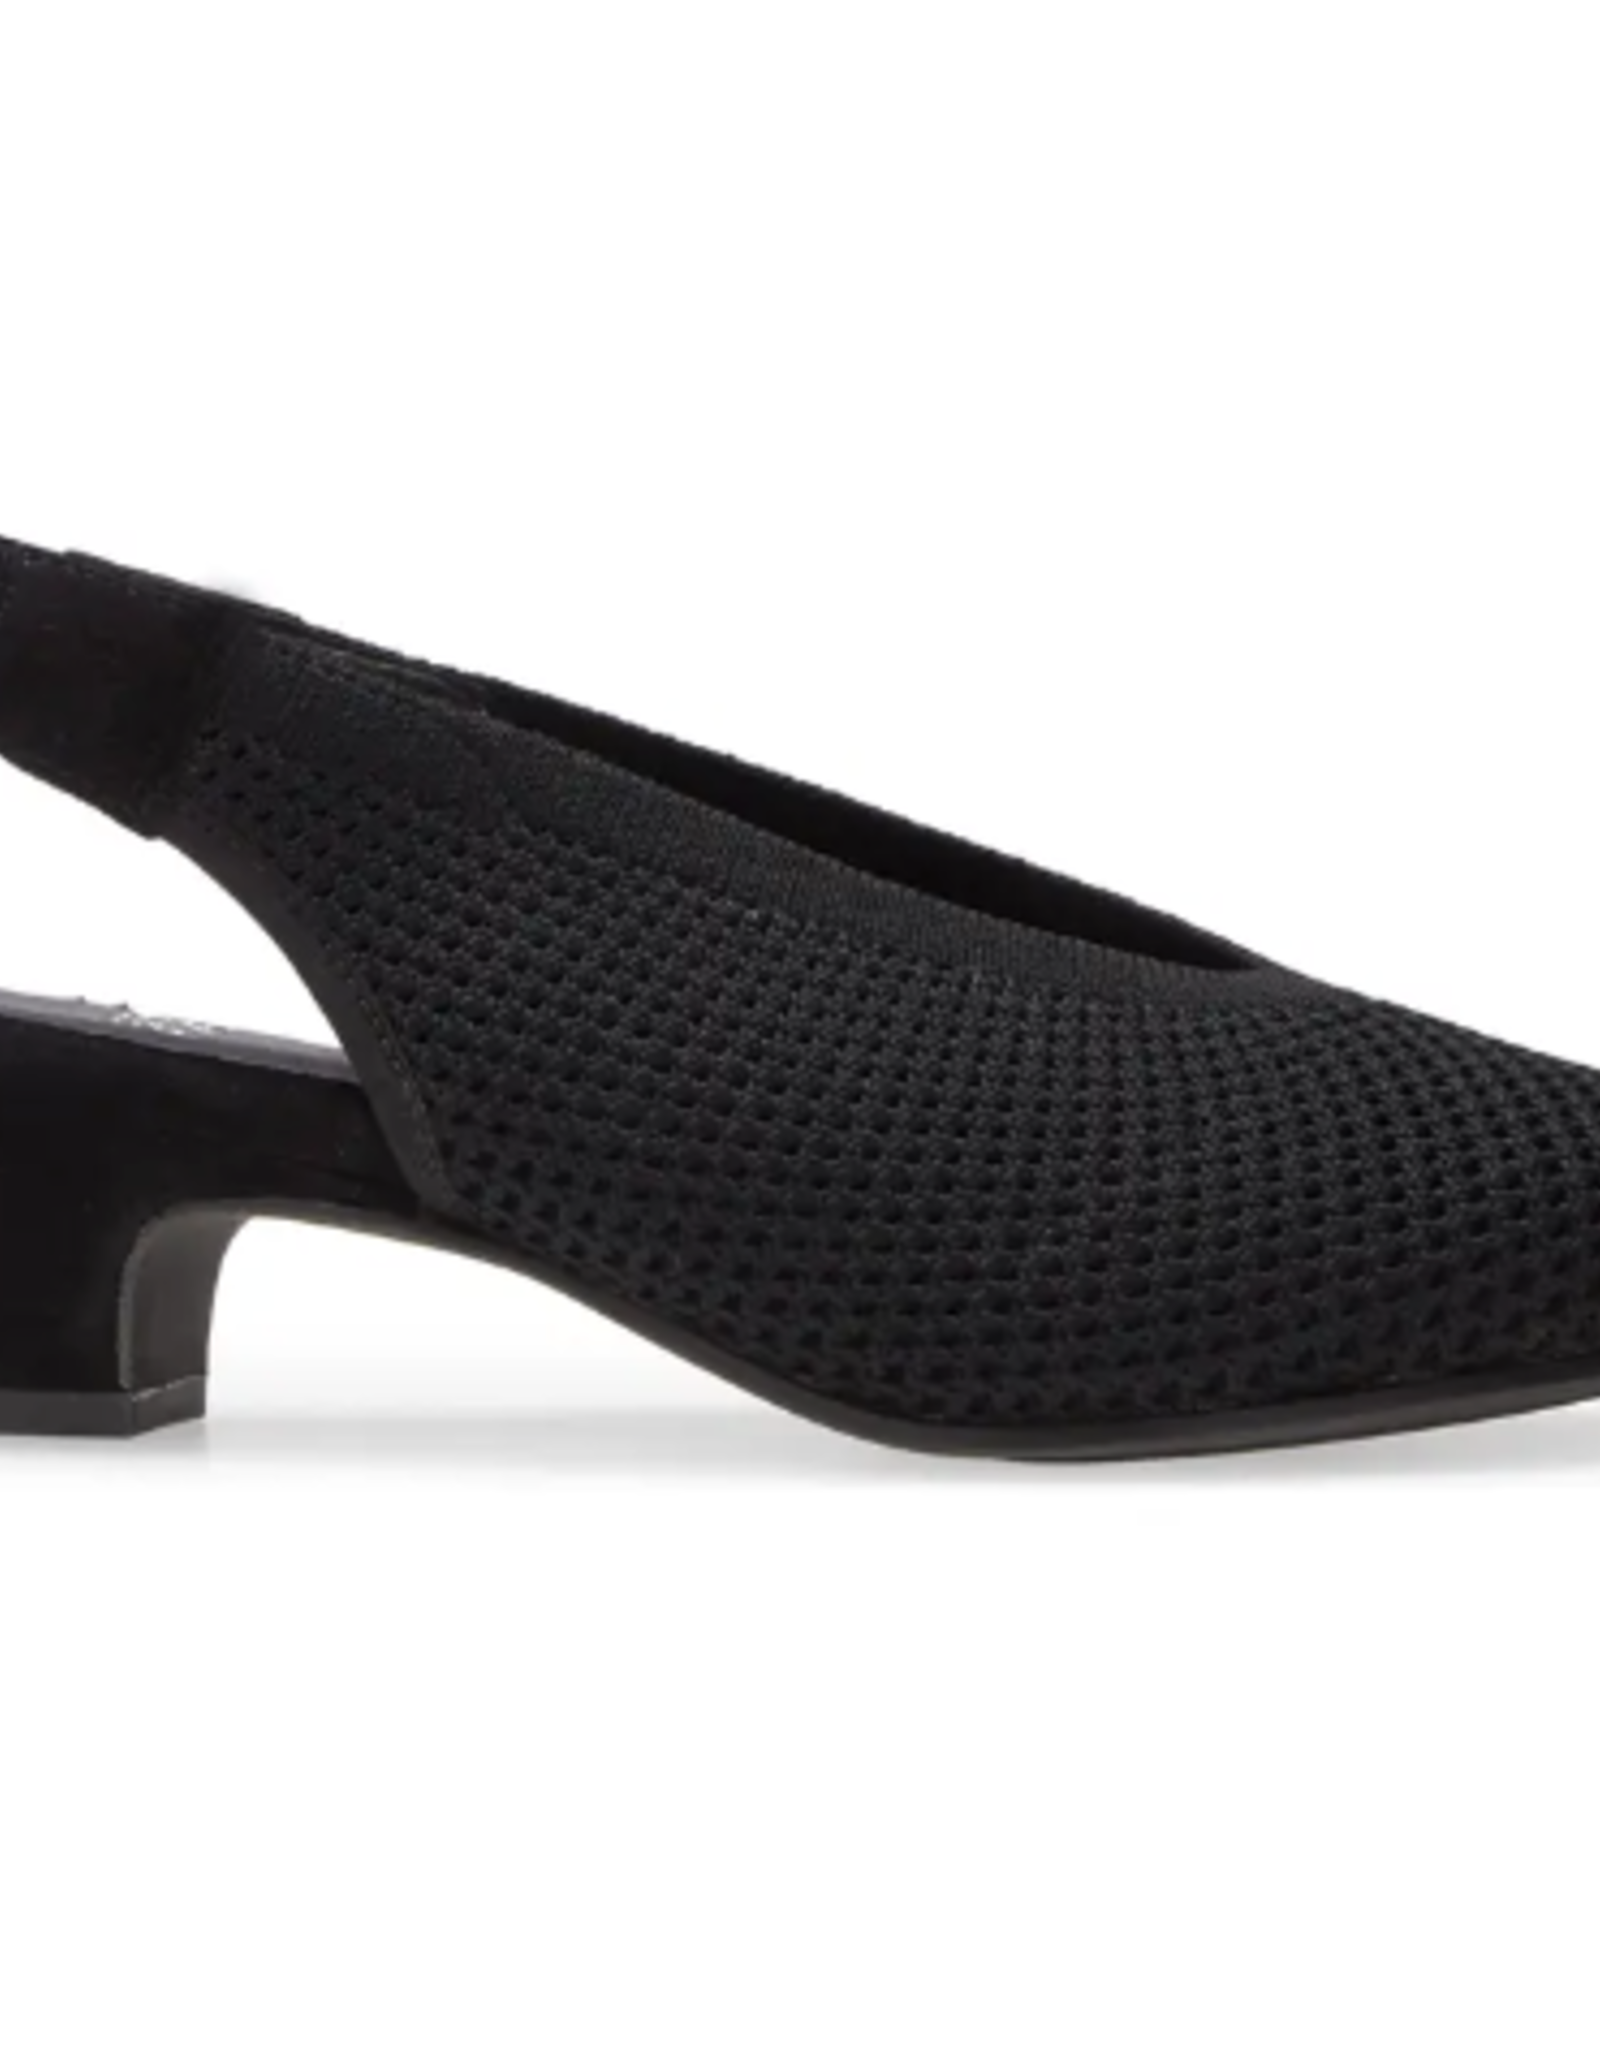 EILEEN FISHER SHOES Beth Knit Slingback